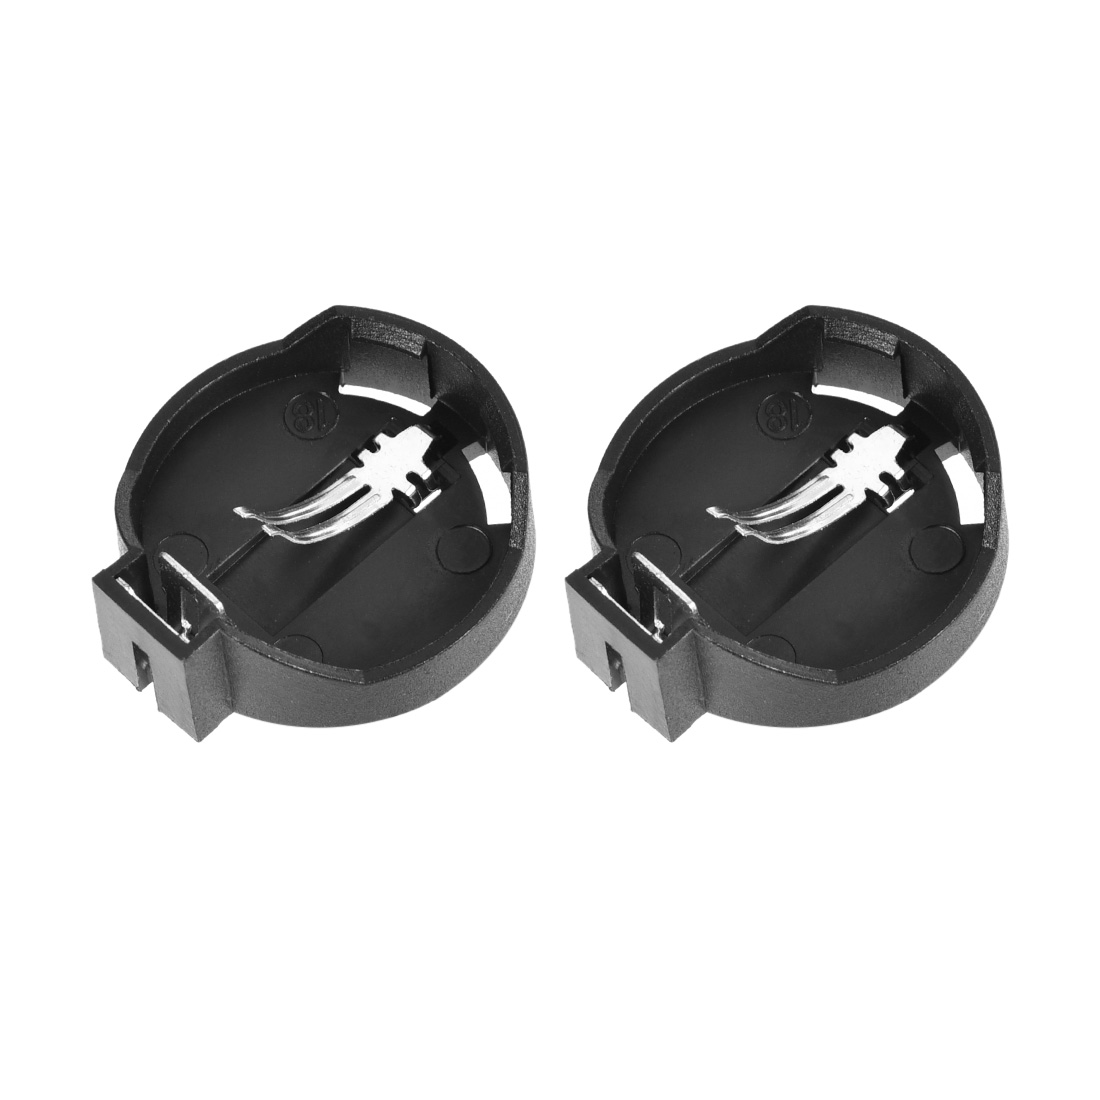 CR2025 Button Coin Cell Battery Holder Storage Case Box Black 2Pcs